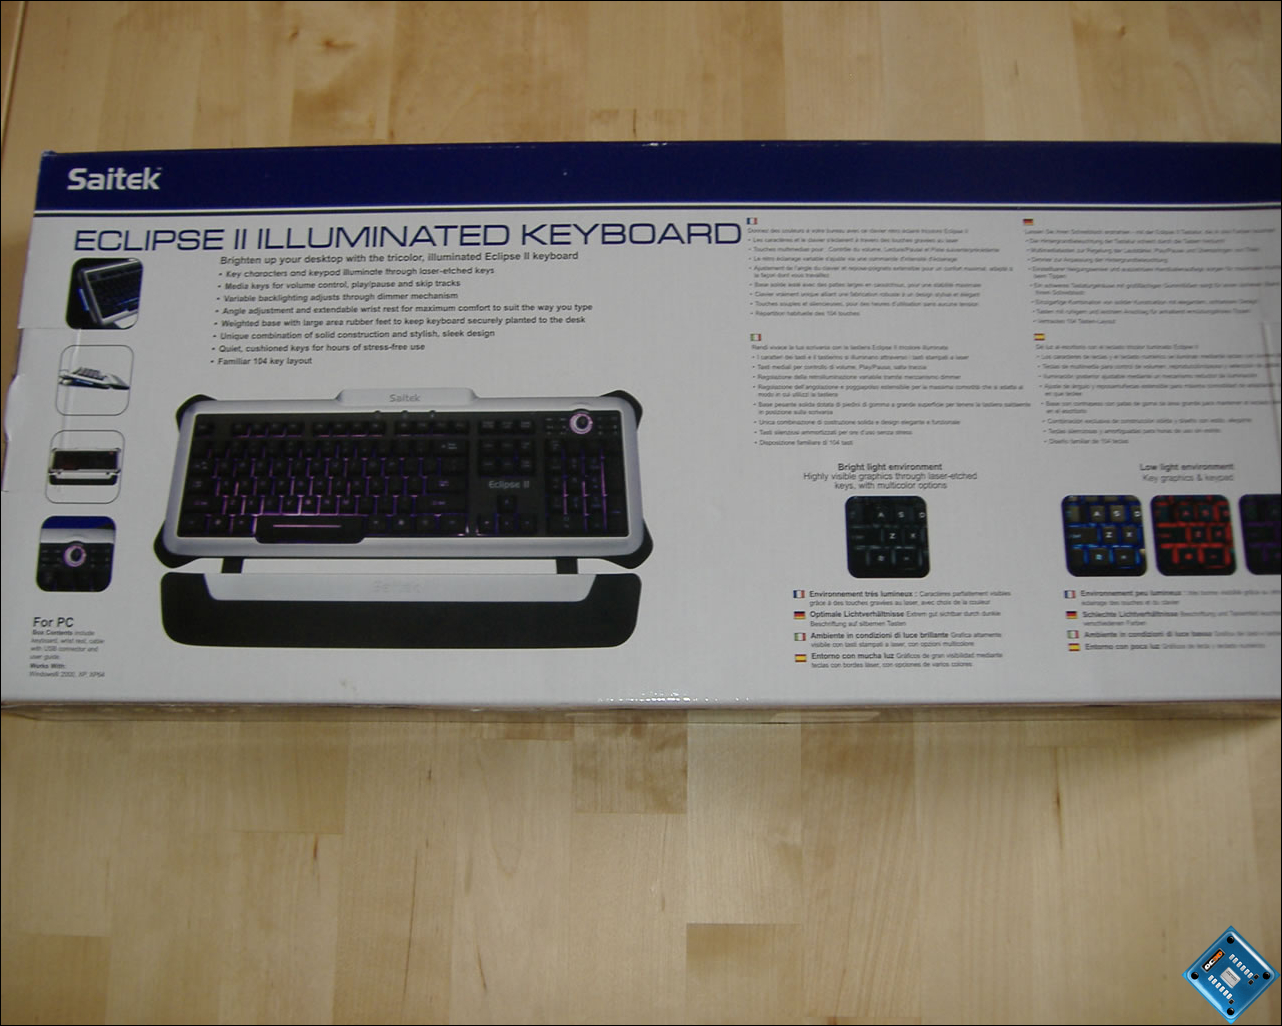 Saitek Eclipse II Illumintated Keyboard Review - Keyboards - CNET ...